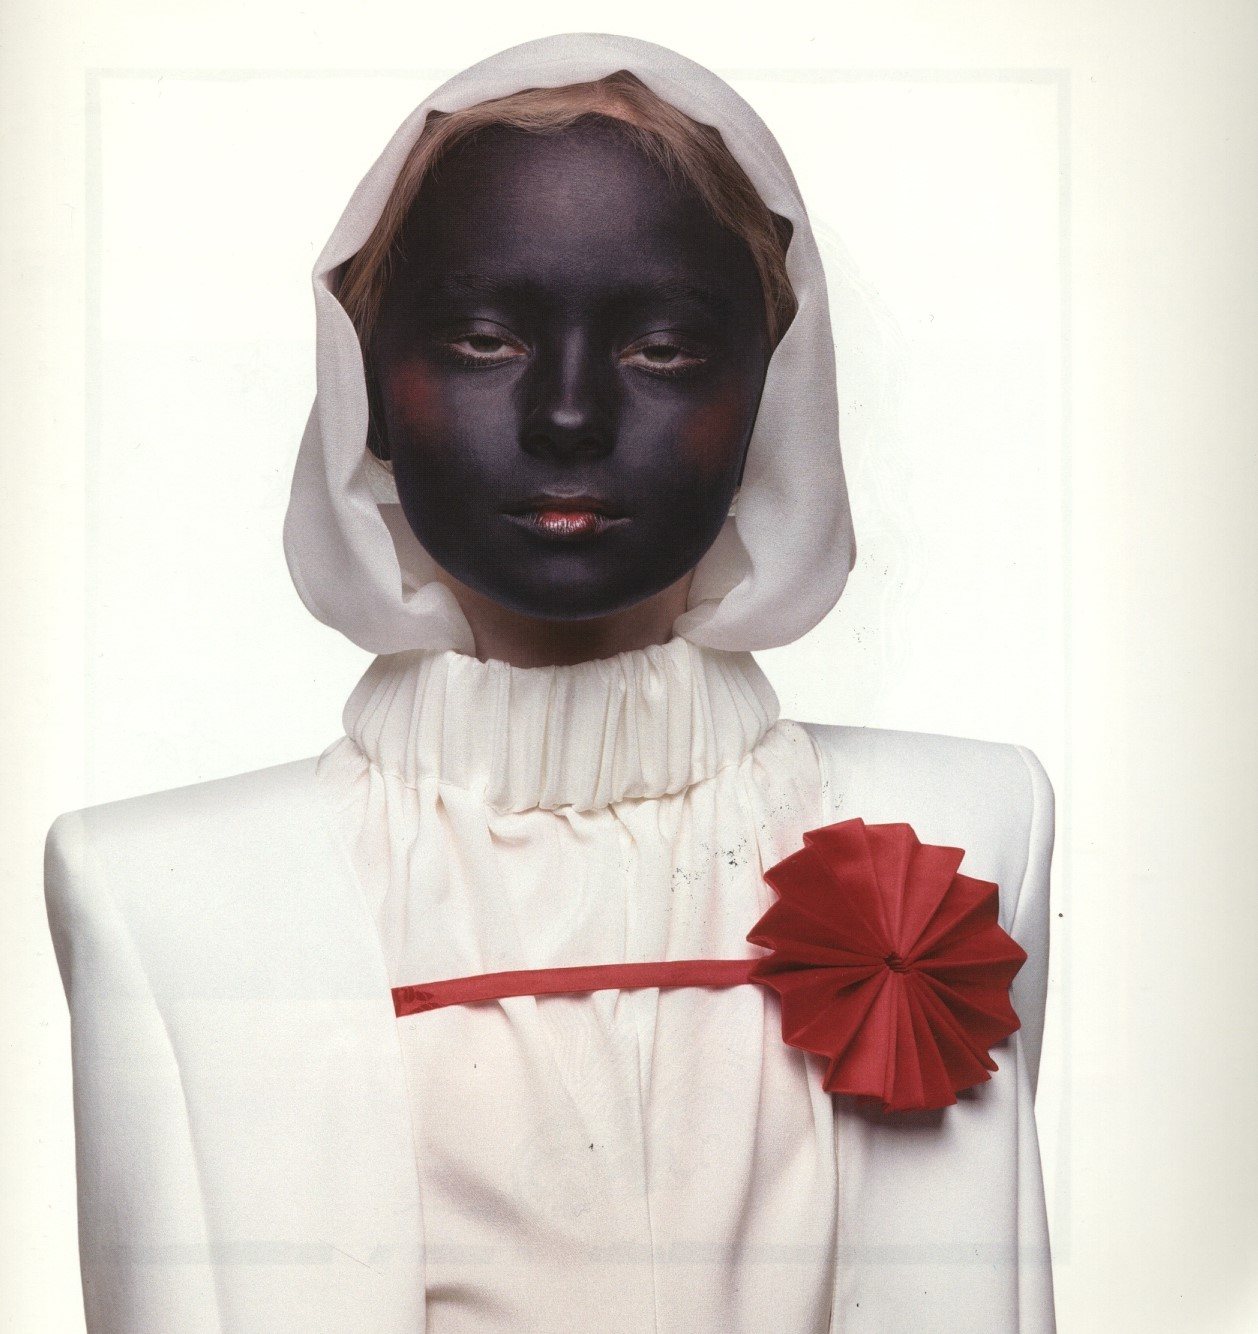 THE WIDOW (WHITE) | PHOTOGRAPHY INEZ VAN LAMSWEERDE & VINOODH MATADIN | 1997 | SELECTION FROM PRETTY MUCH EVERYTHING BOOK